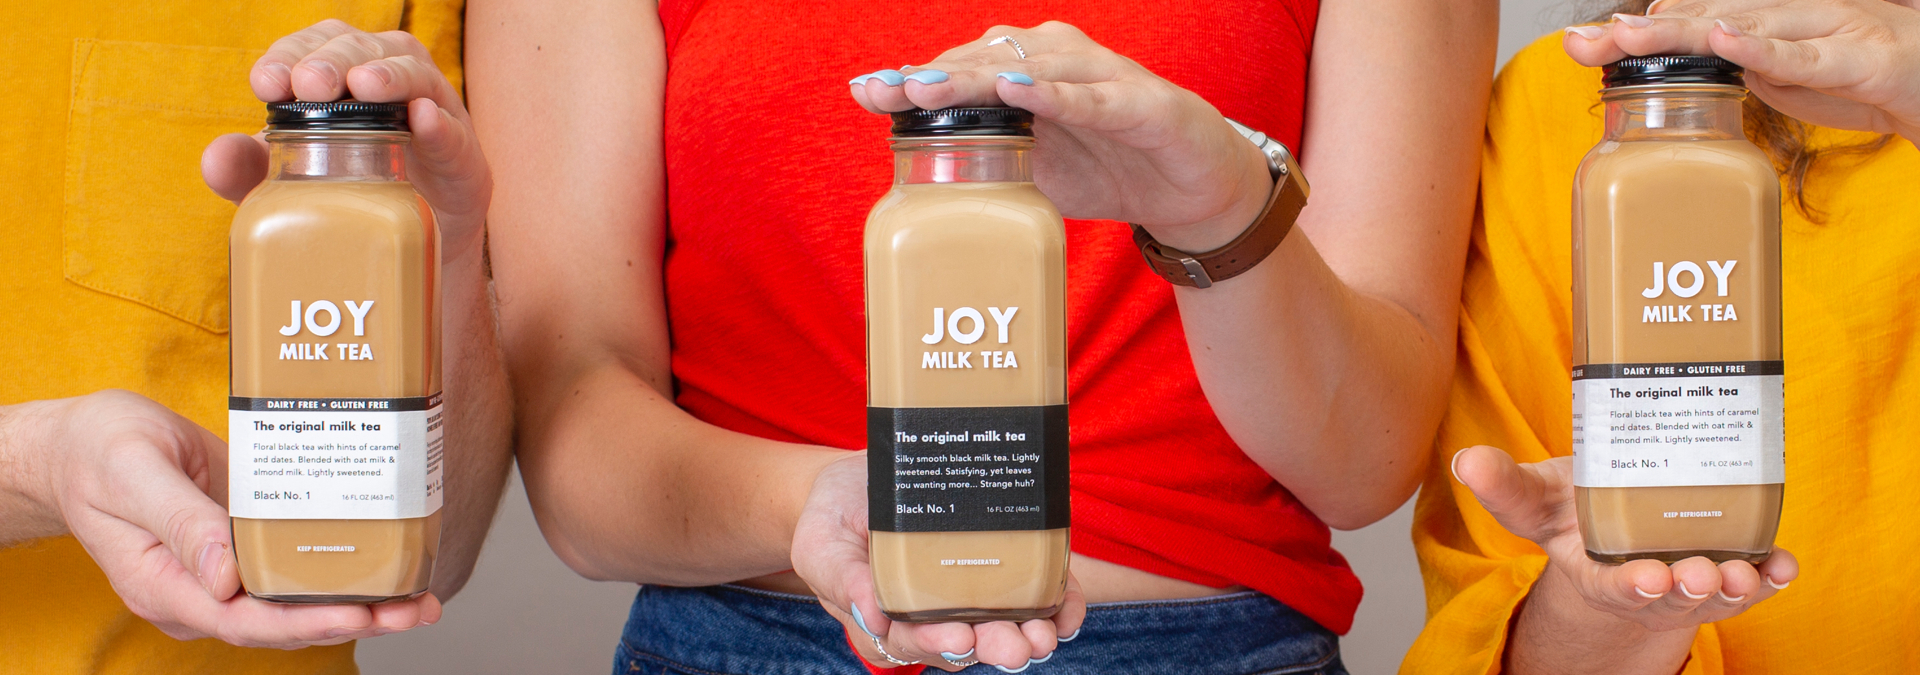 Joy milk tea makes dairy (black label) and dairy free (white label) milk teas that taste as great as they function.